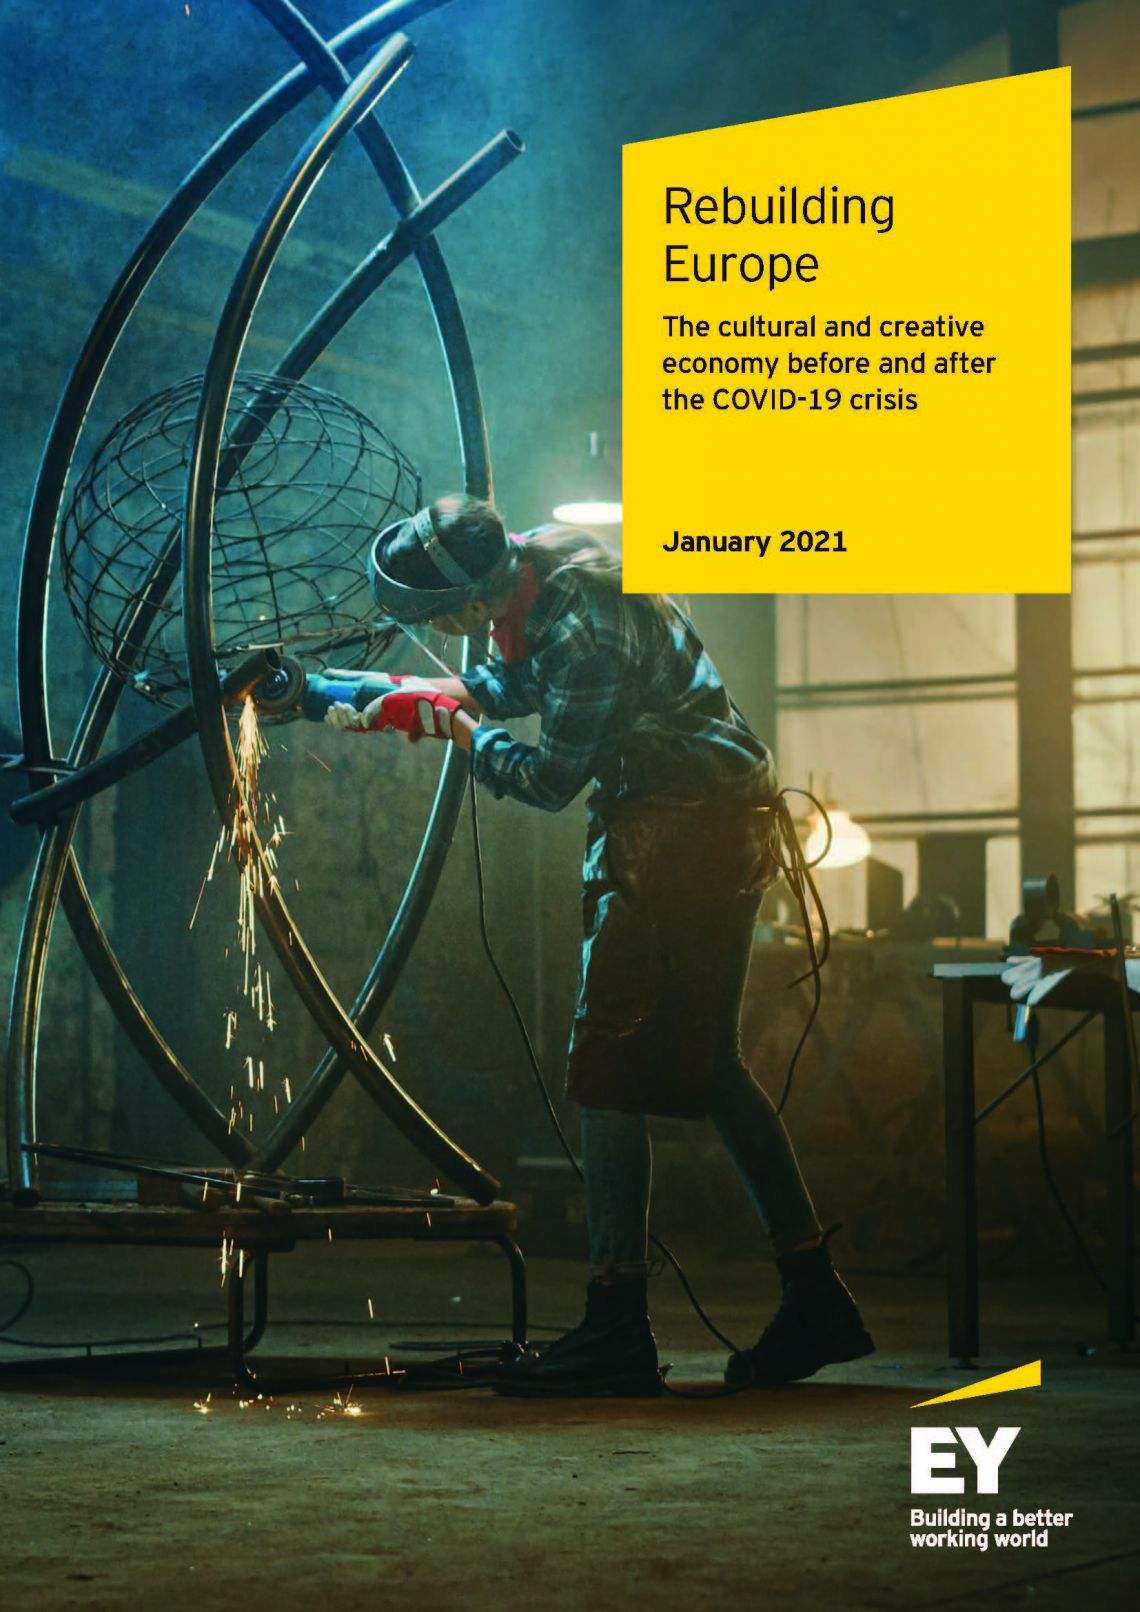 New study reveals that cultural and creative industries could hold the key to rebuilding Europe's battered economy